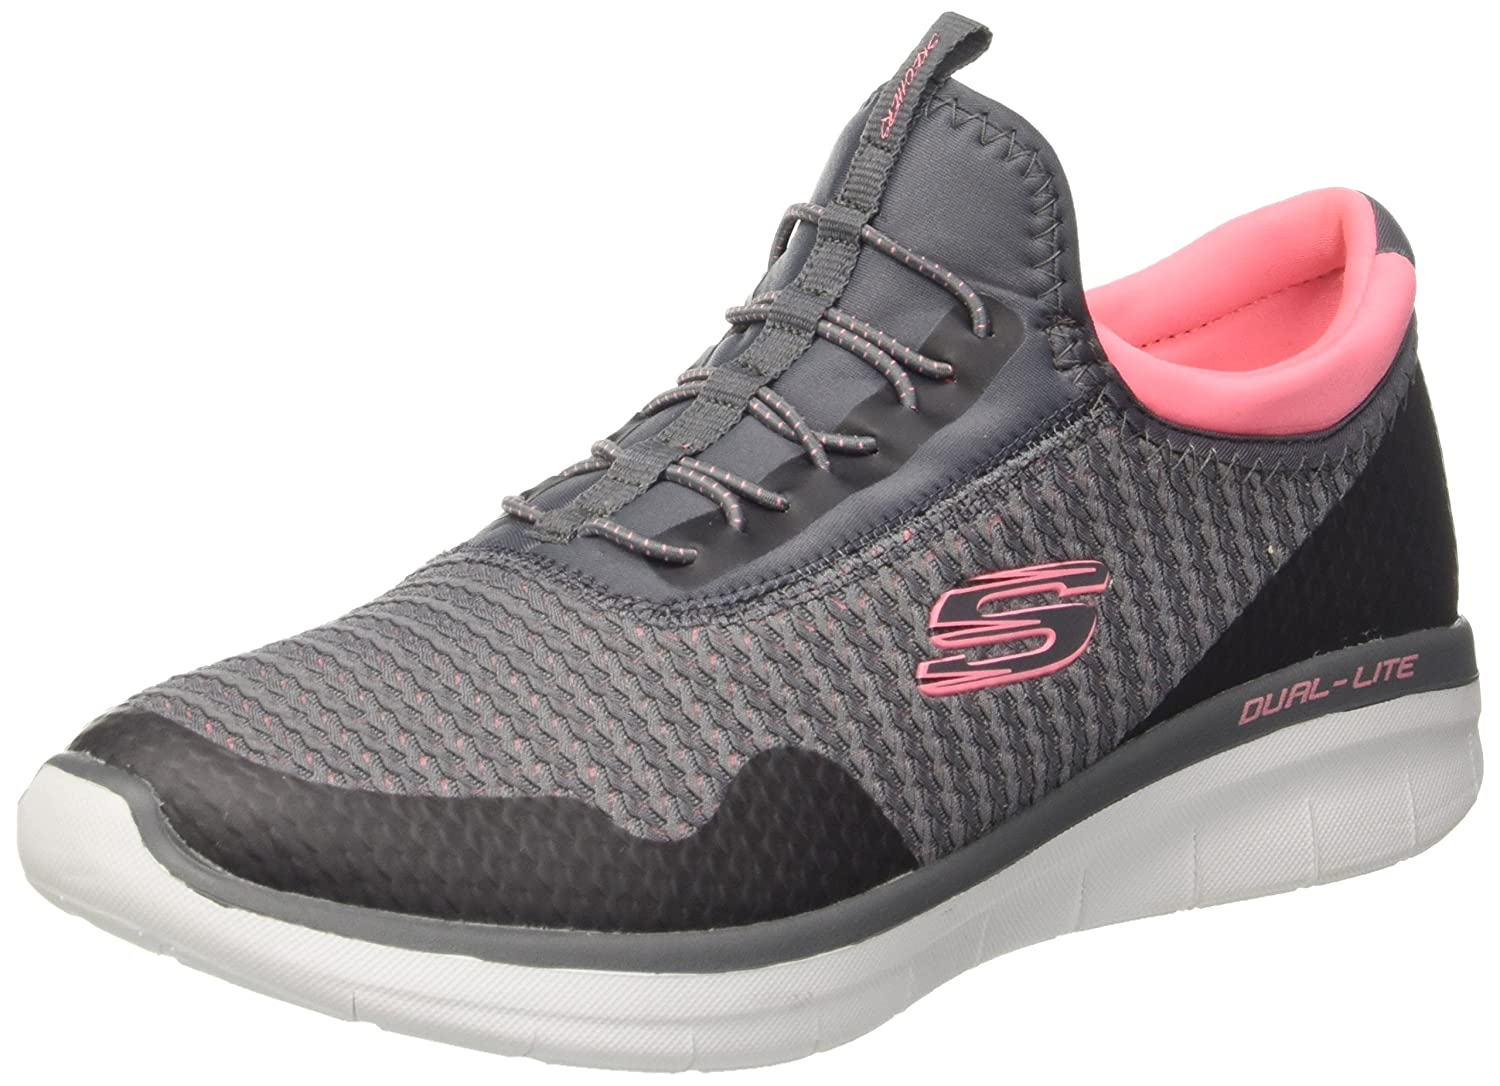 Skechers Women's Synergy 2.0-Mirror Image Fashion Sneaker B076FJ1J7G 8 B(M) US|Charcoal/ Coral